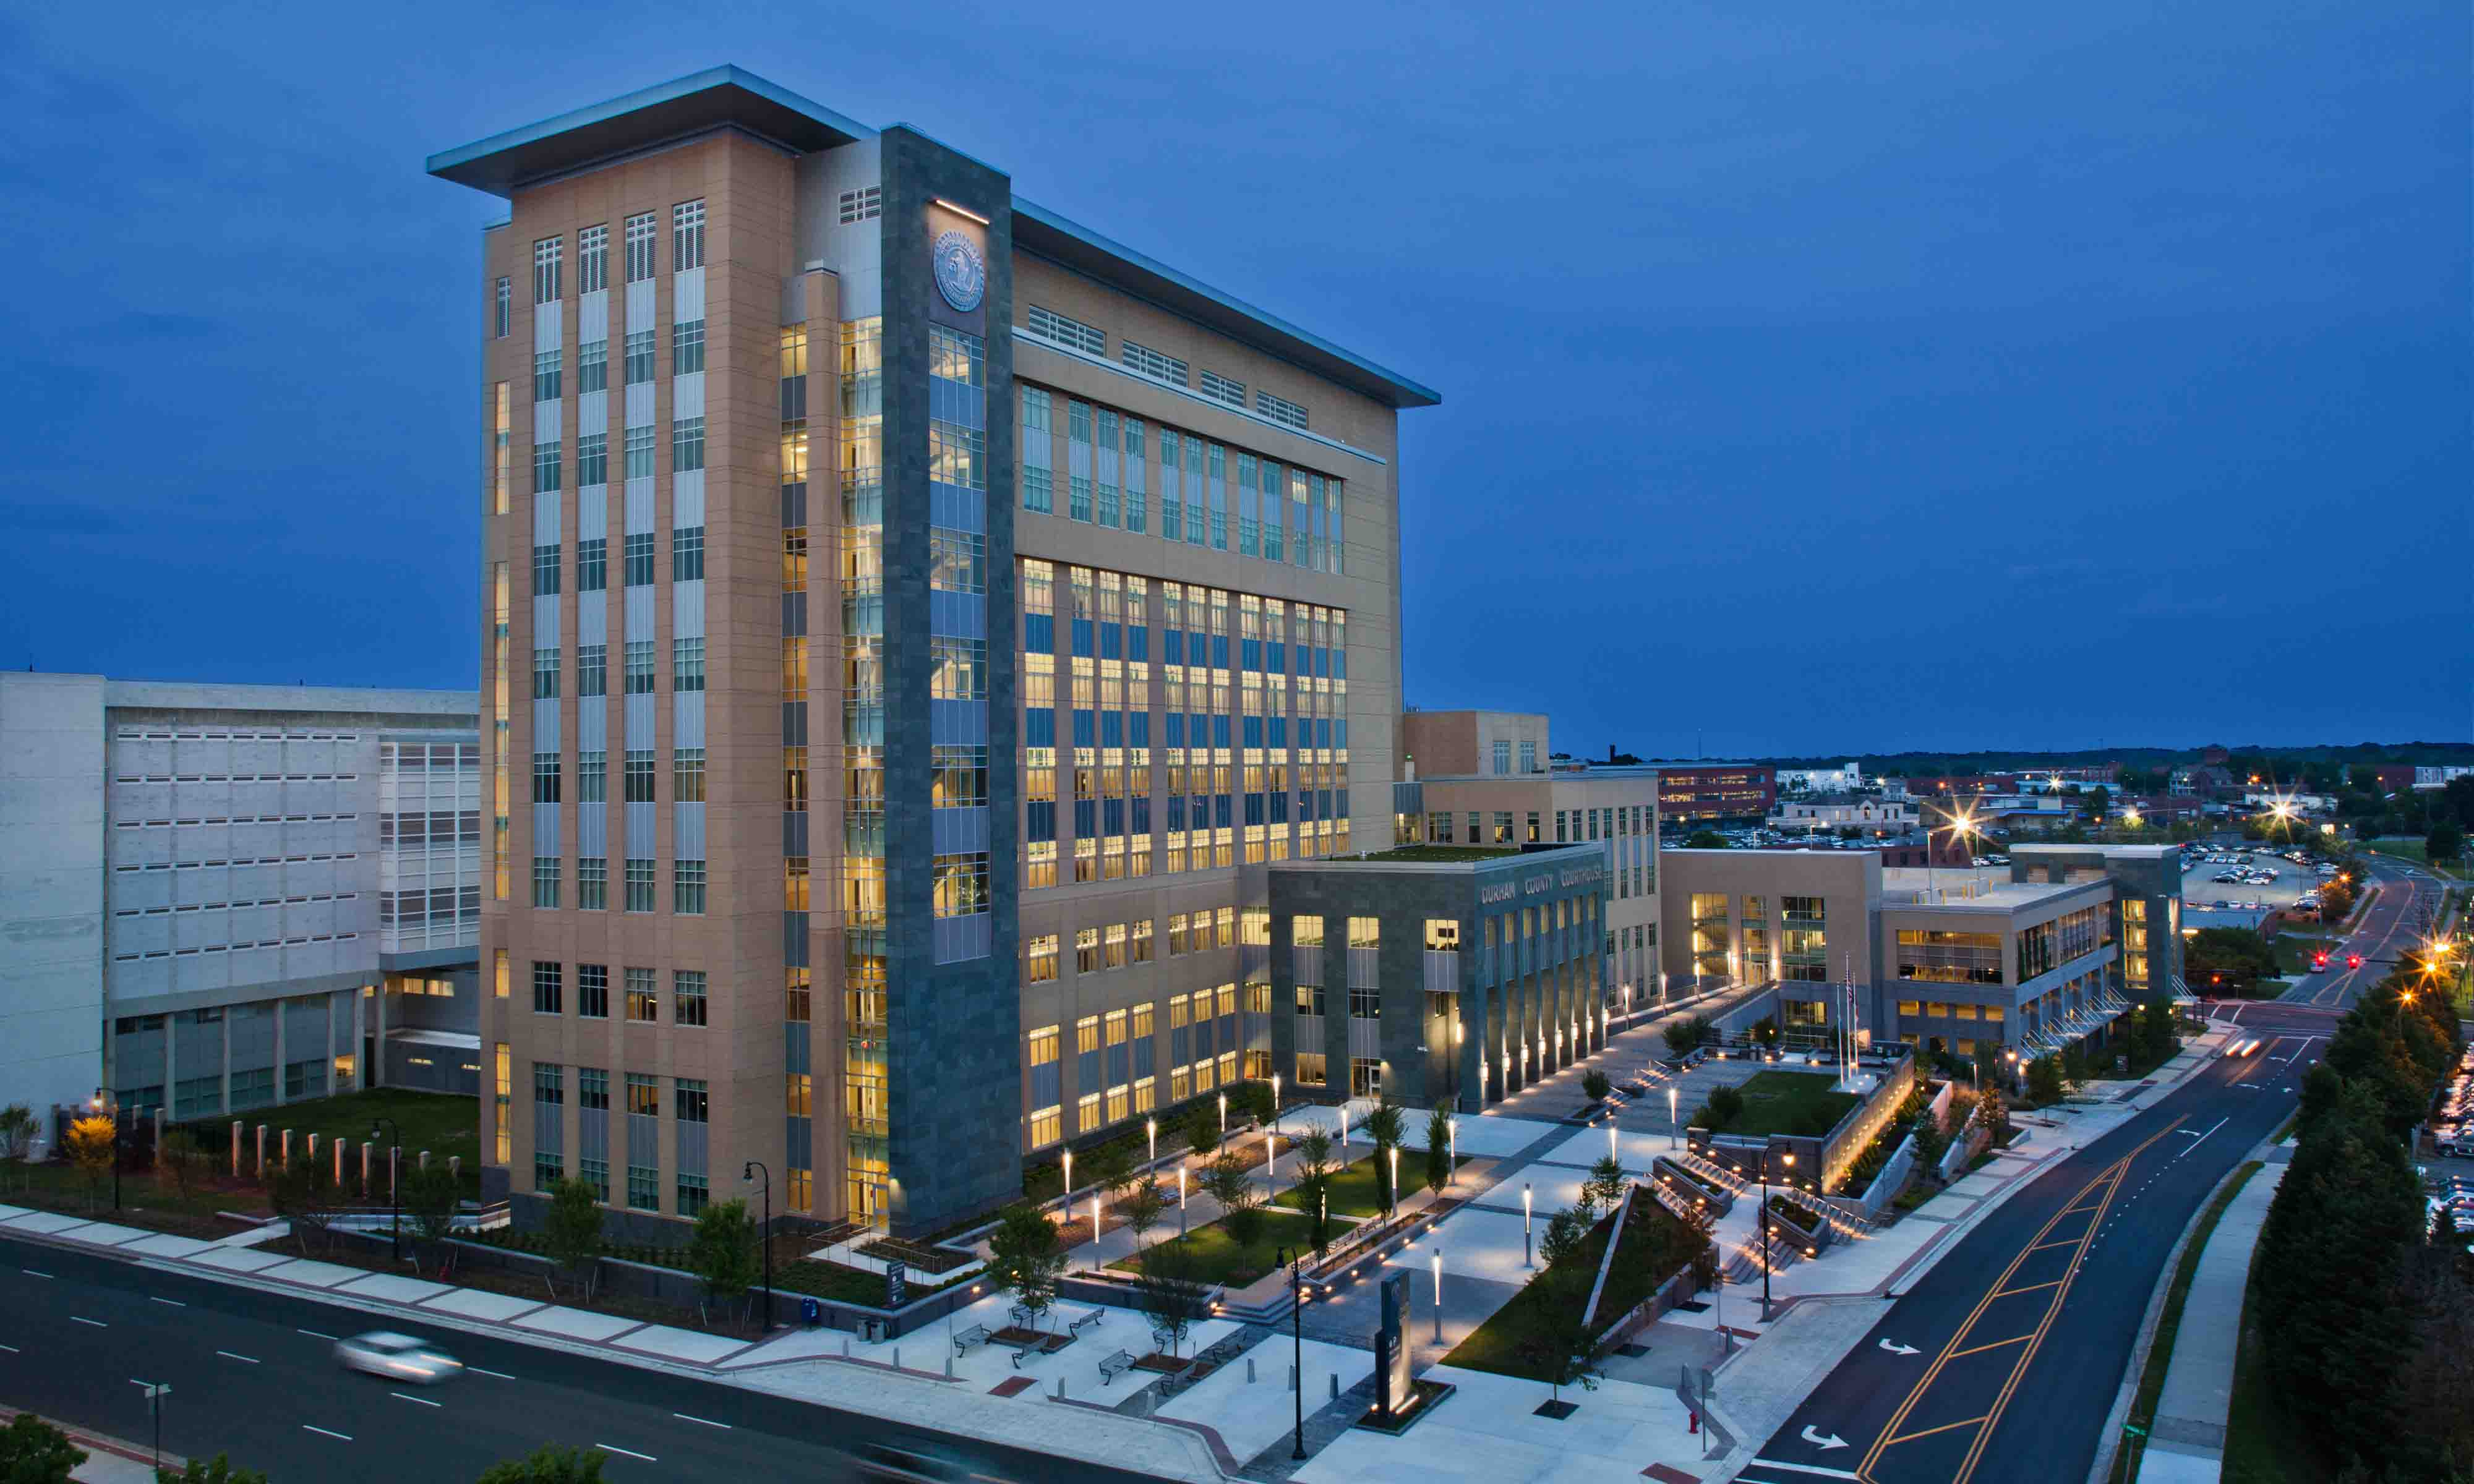 Durham County Courthouse and Parking Deck - O'Brien Atkins